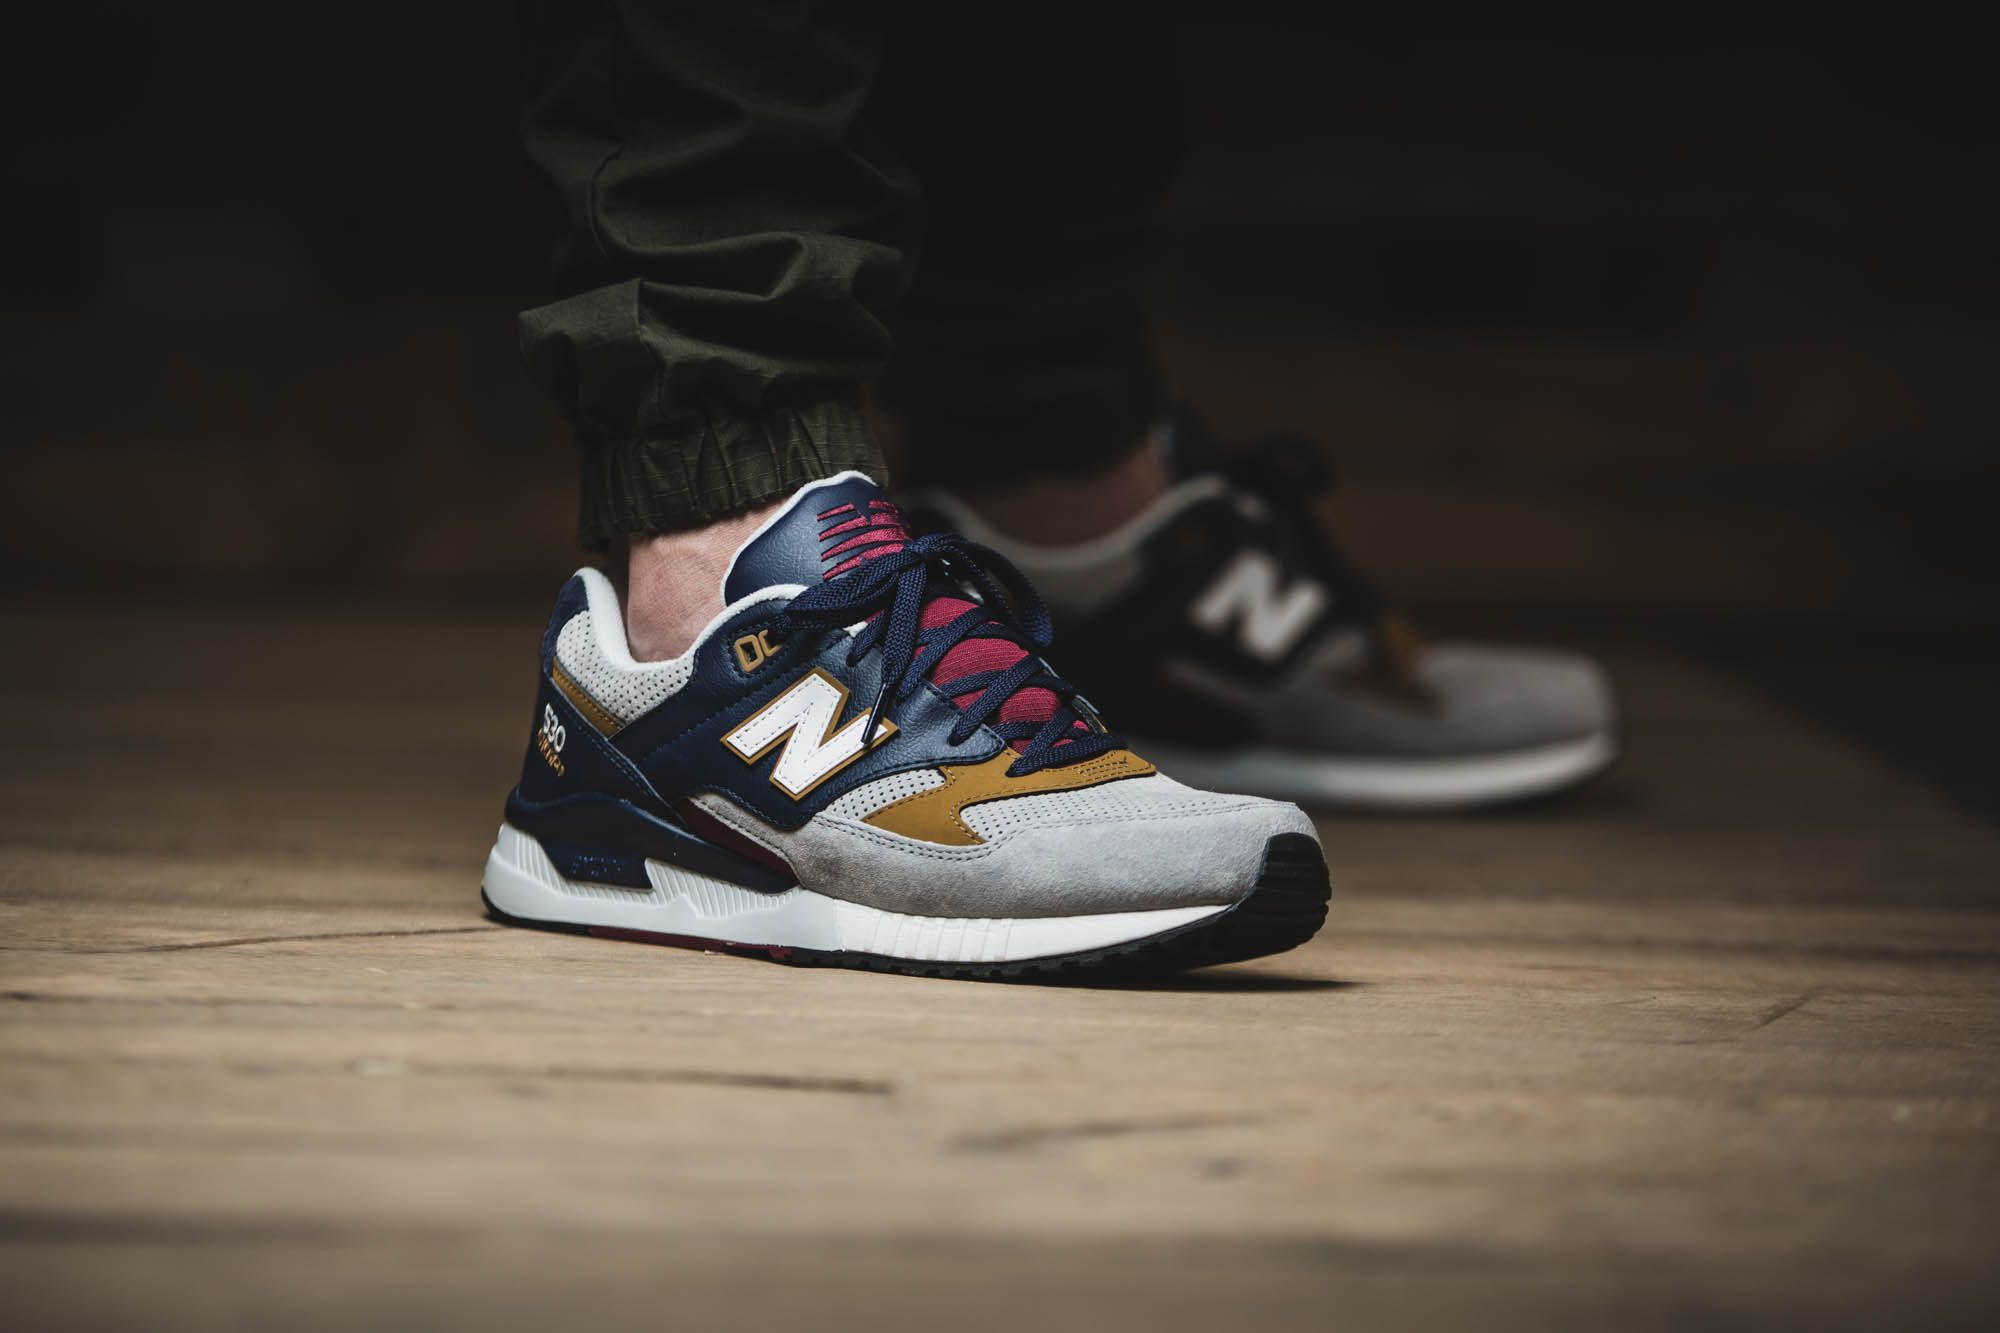 The New Balance M530RWB from the